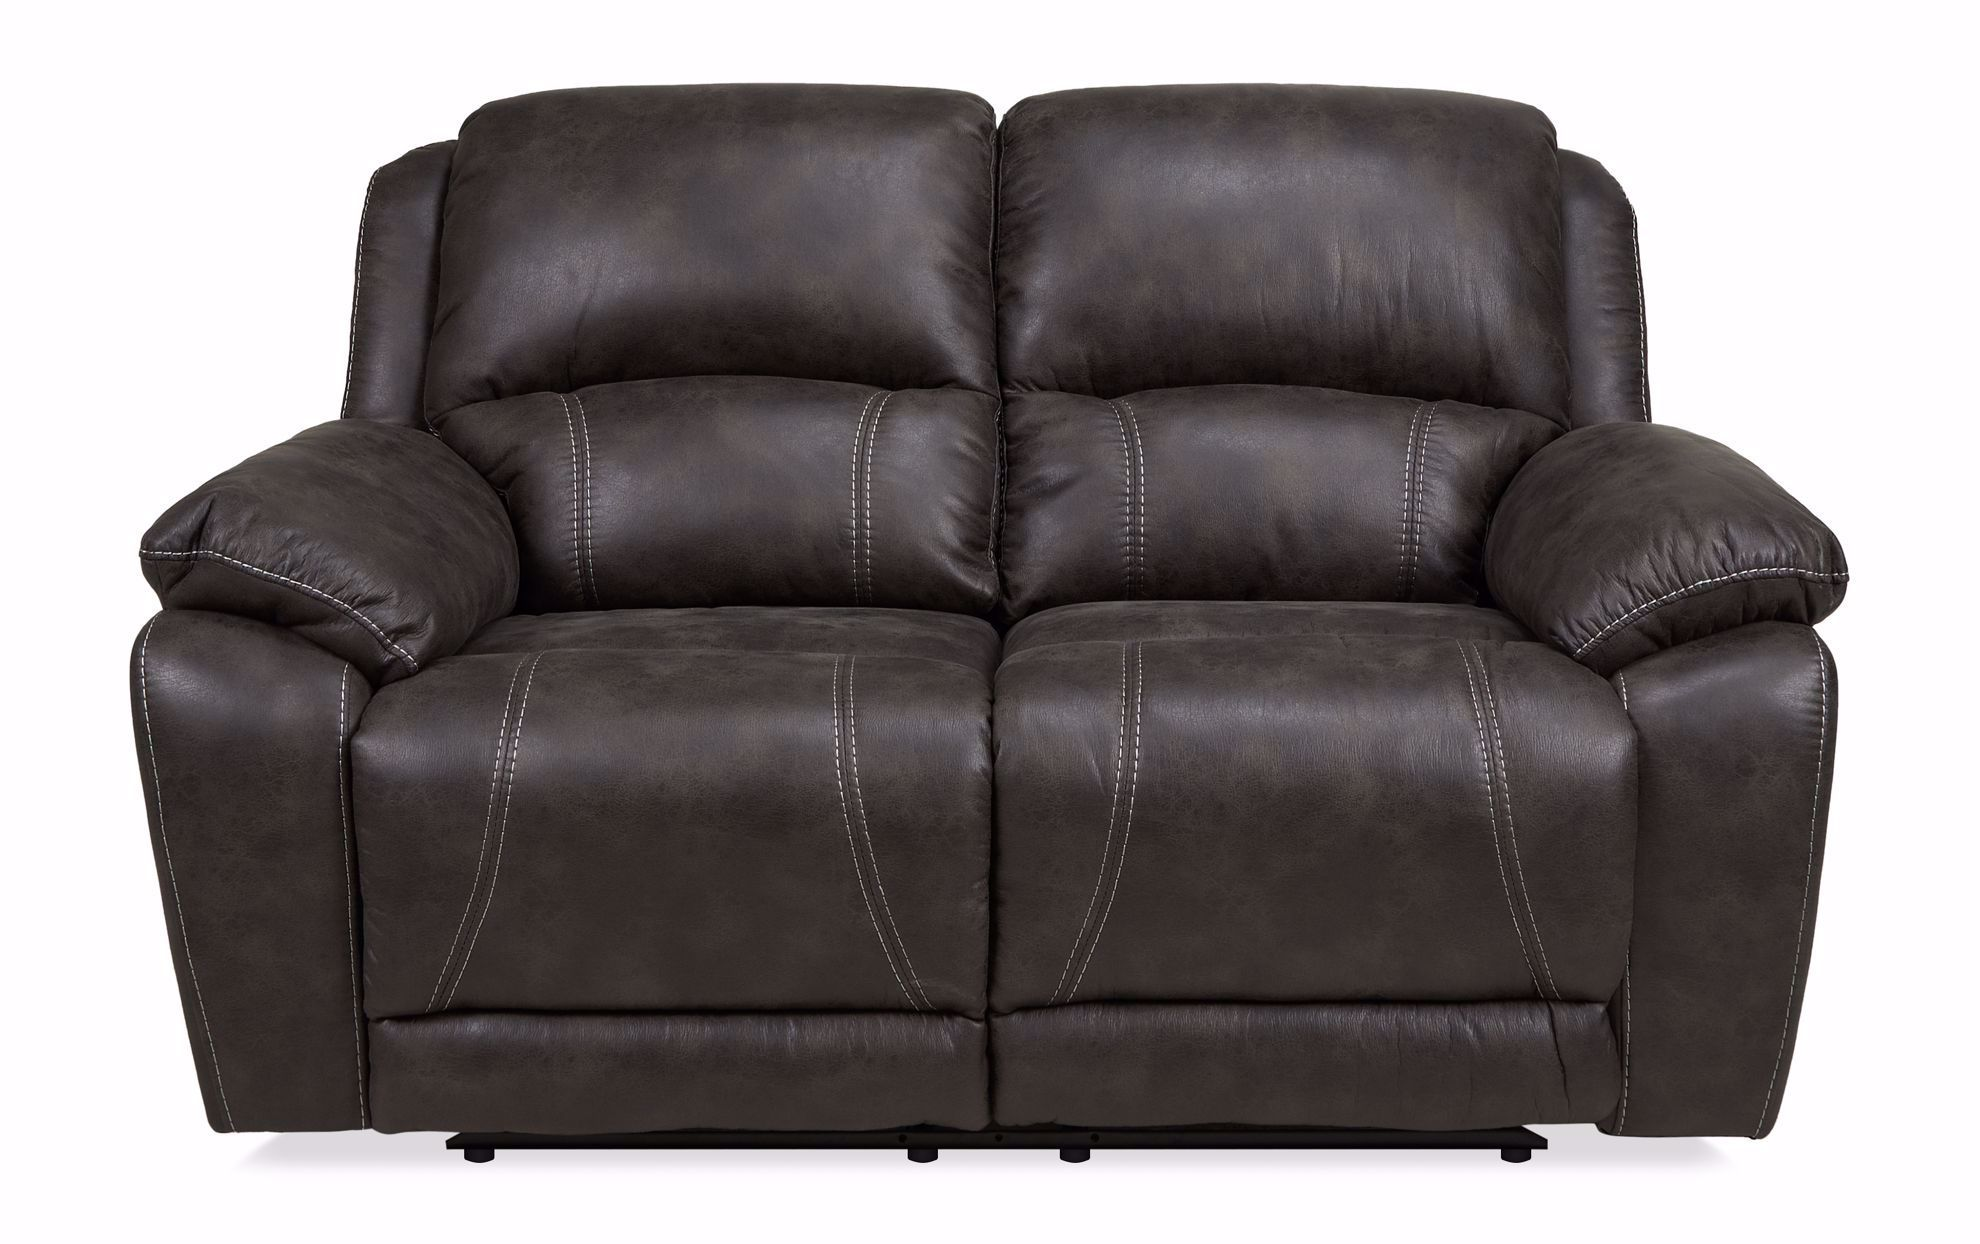 Picture of Natalie Granite Reclining Loveseat